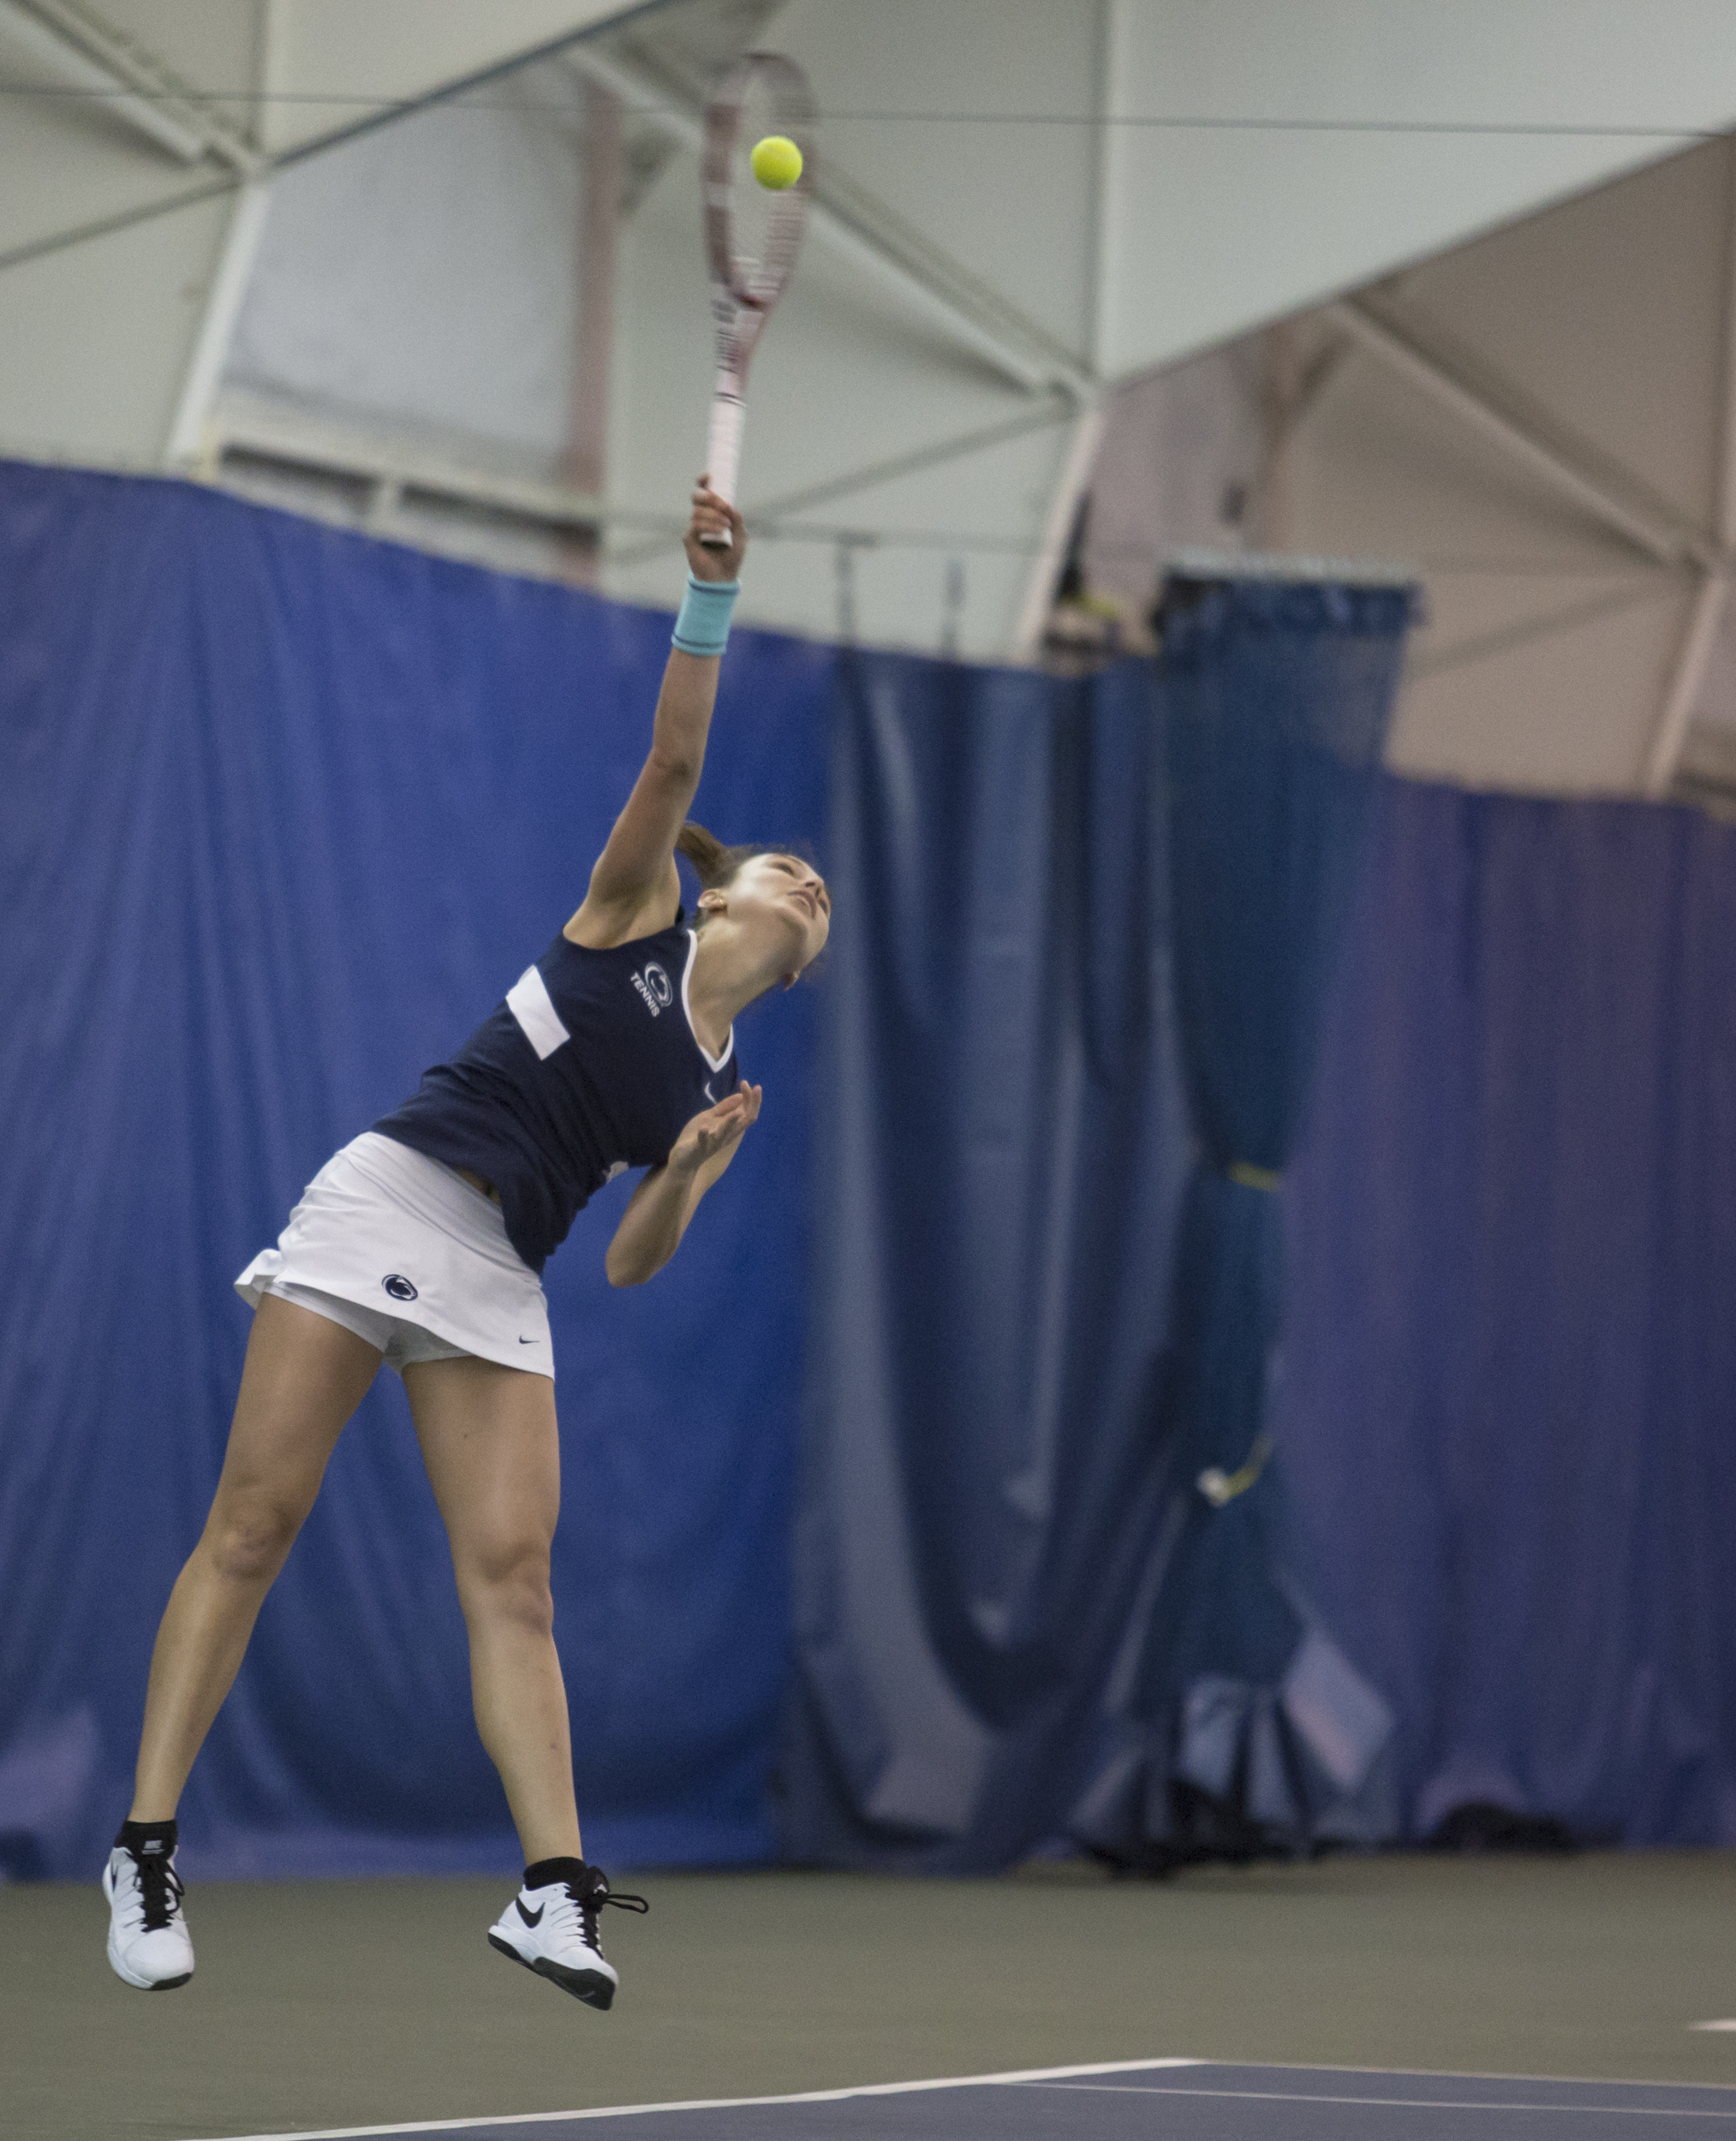 Devan McClusky lunches to return a volley during the doubles match against Nebraska at the Indoor Tennis Facility on Friday, April 8, 2016.